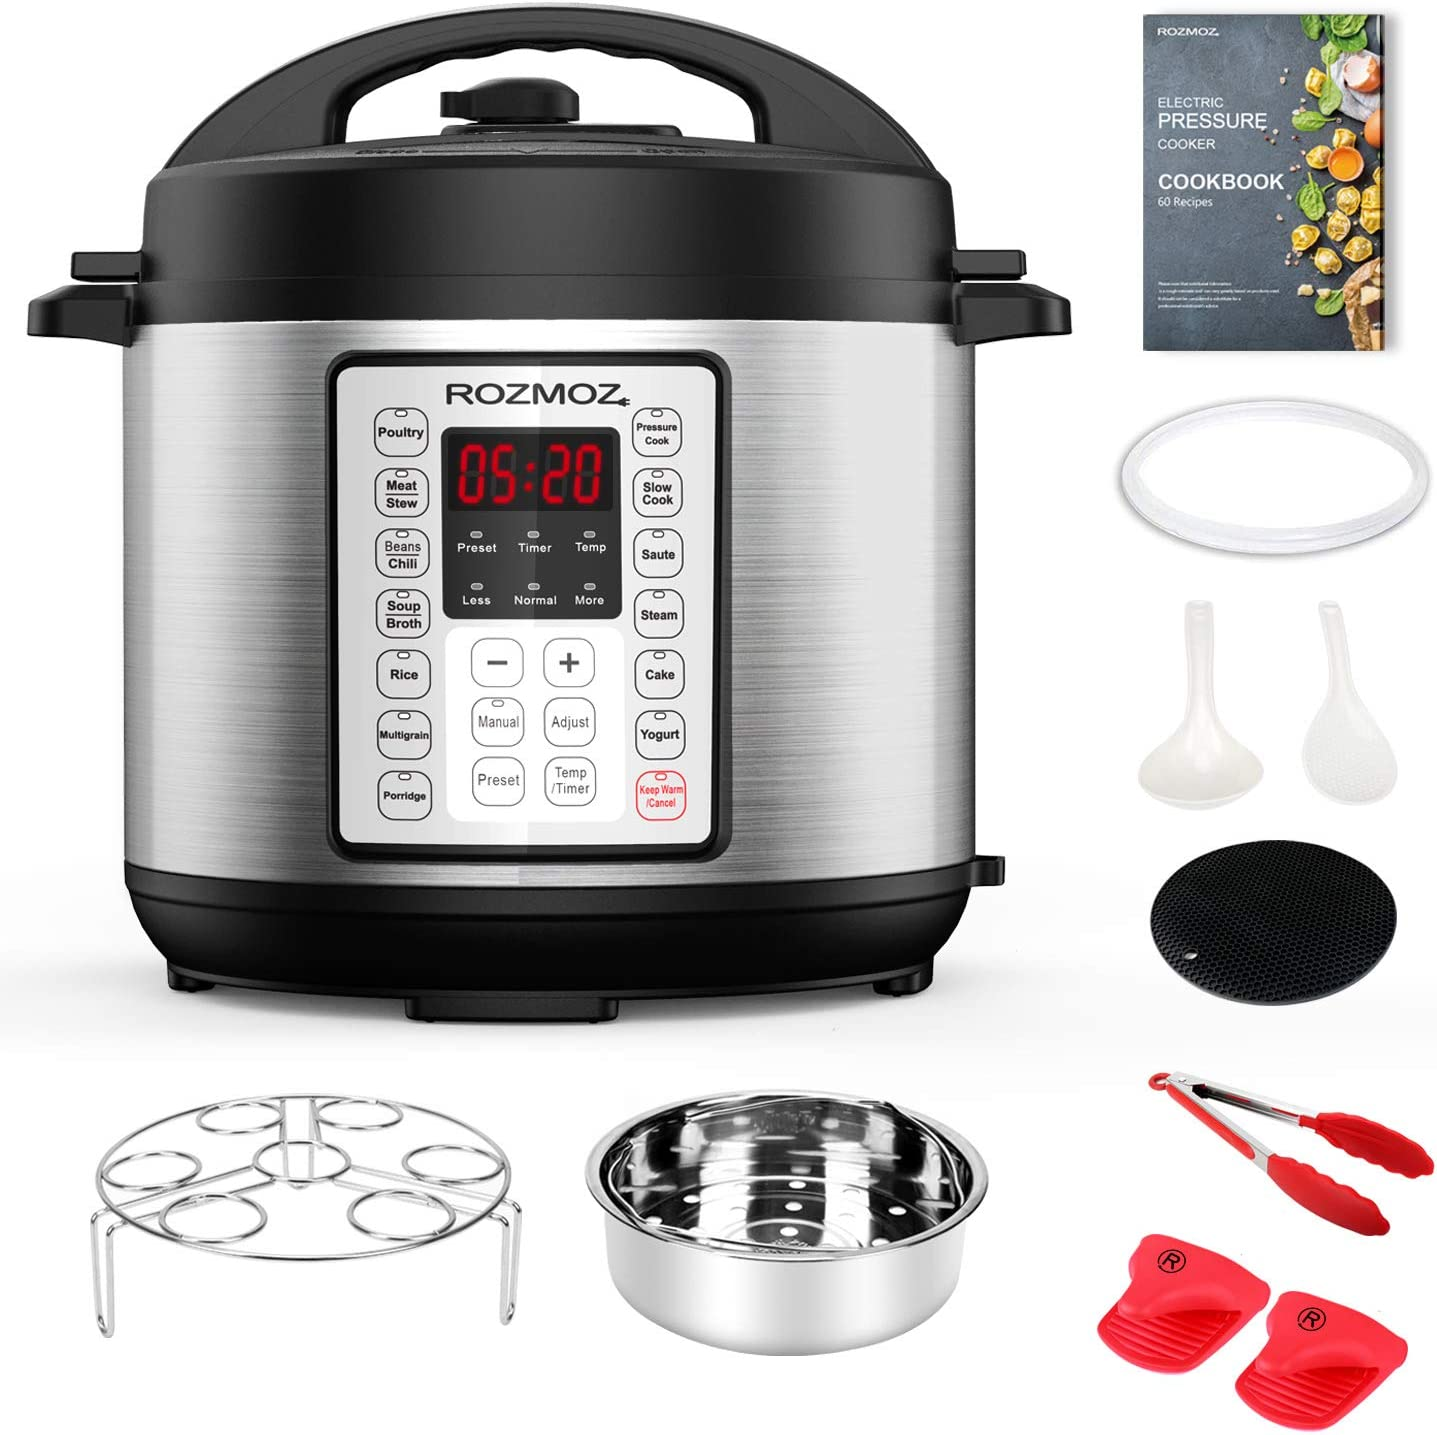 Rozmoz 14-in-1 Electric Pressure Cooker